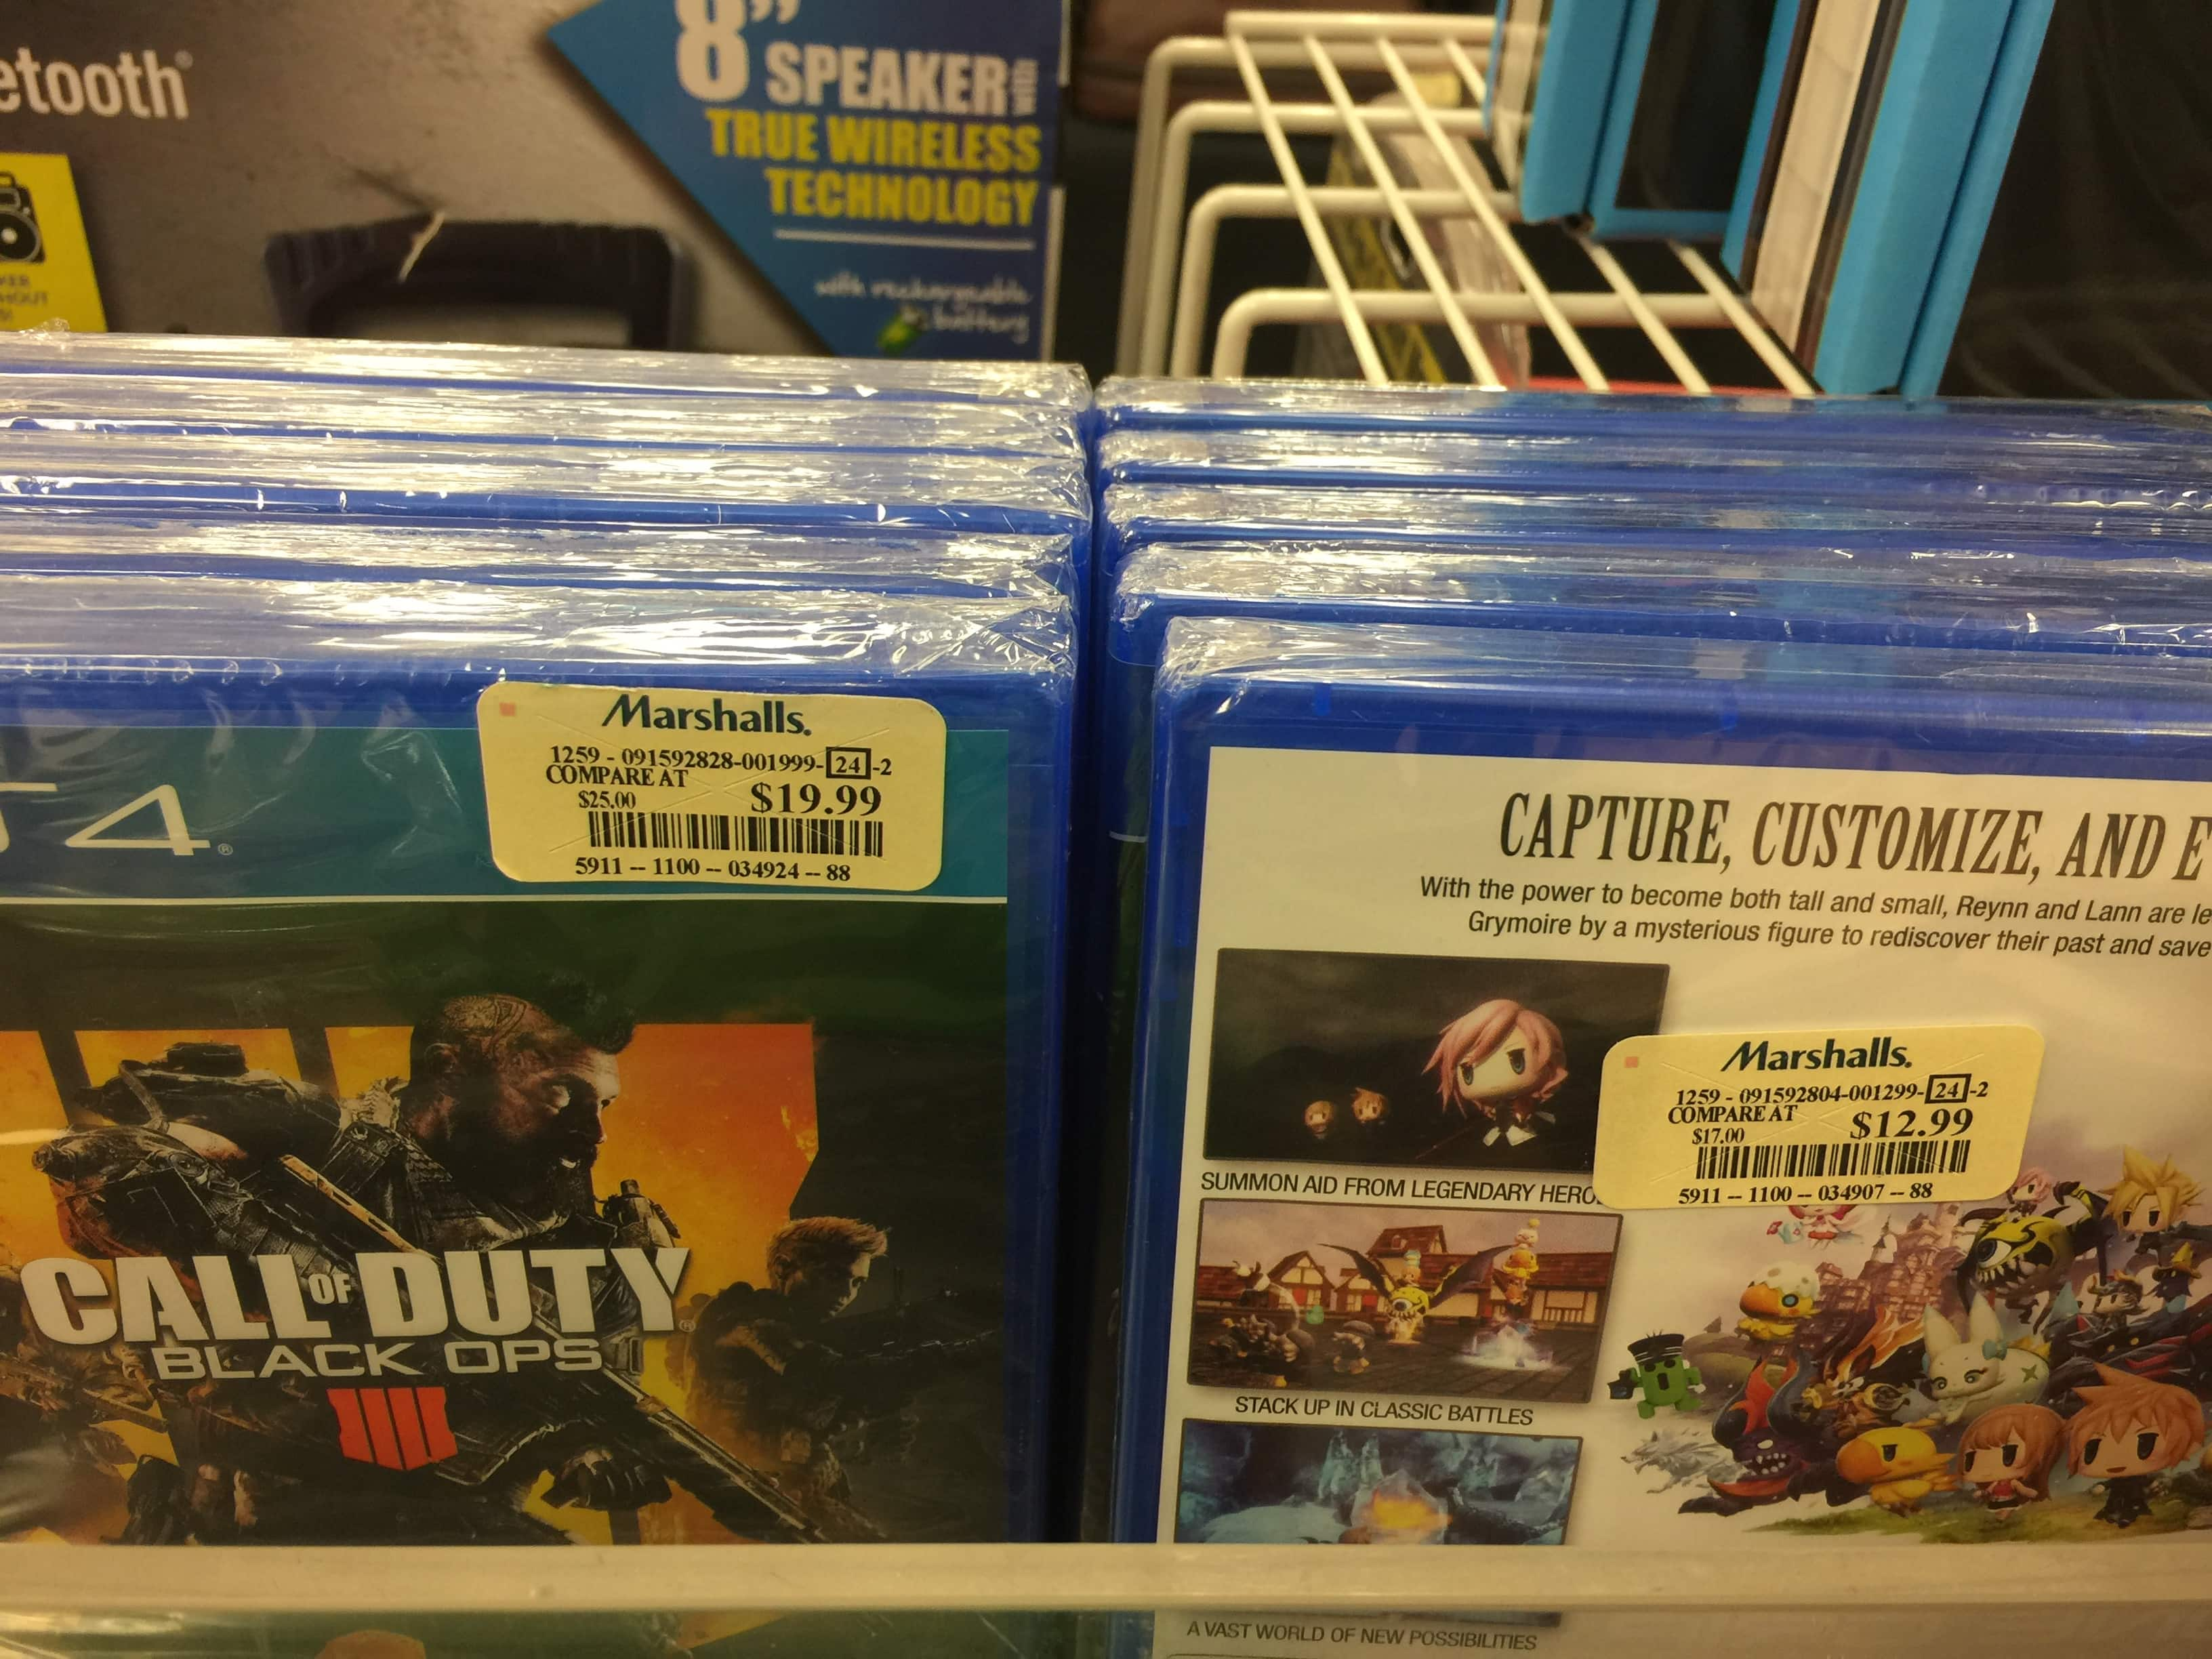 Call of Duty Black Ops 4 PS4 - YMMV - Marshall's Medfield MA $19.99